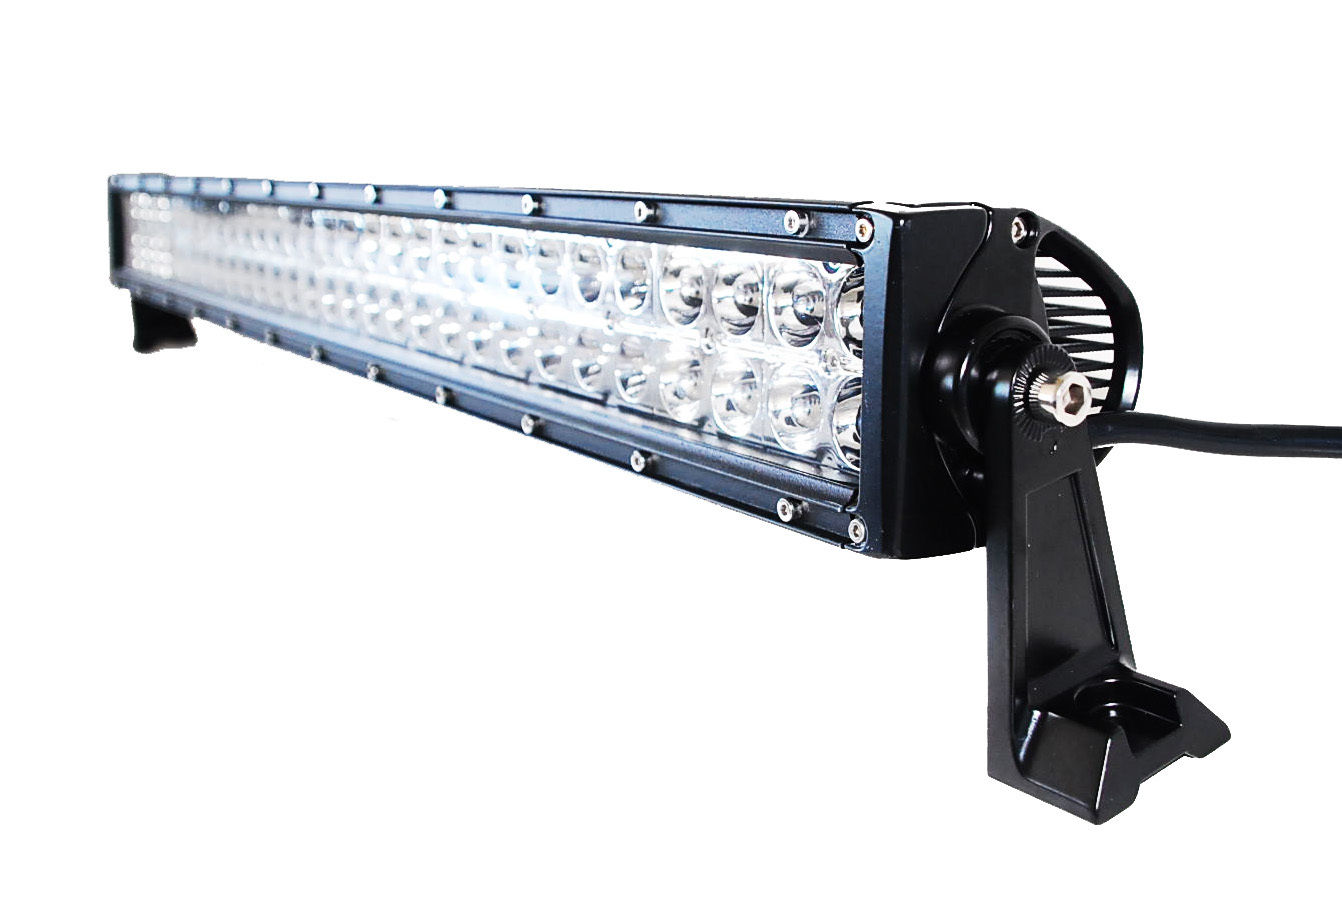 12 volt led offroad light bar 52 inch car led light bar 300W offroad led light bar